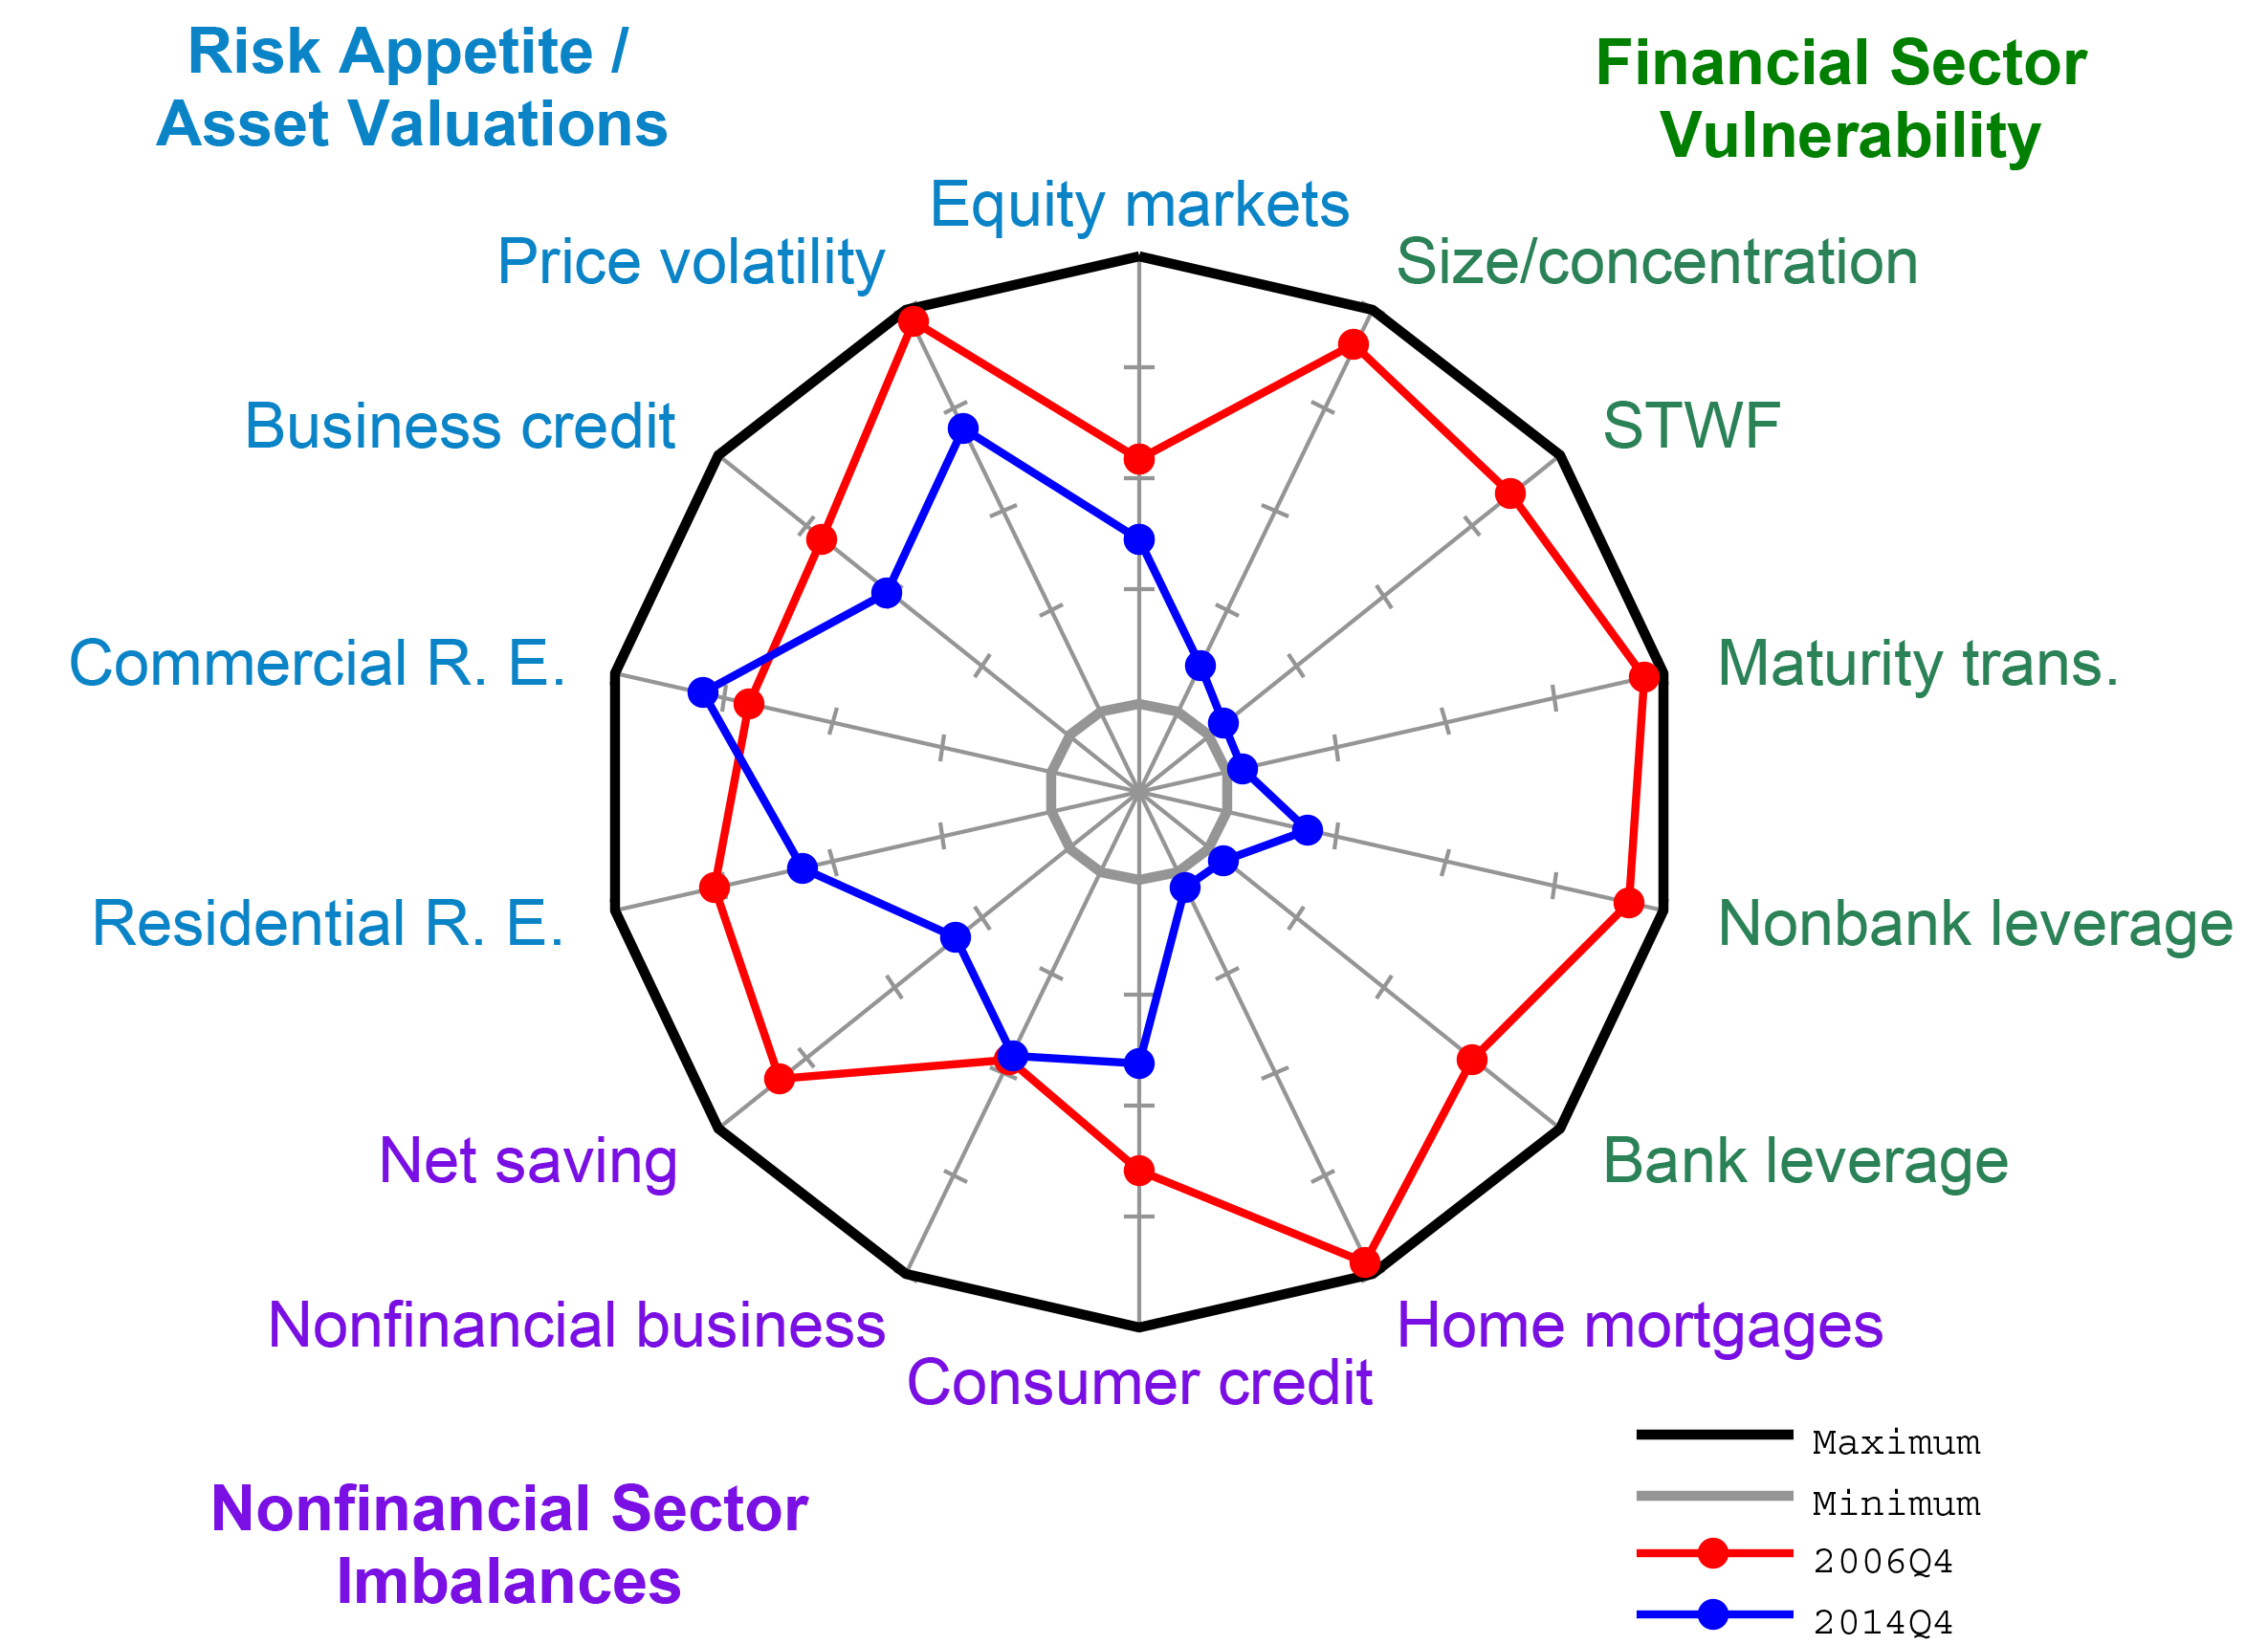 Frb feds notes mapping heat in the us financial system a summary figure 2 radar chart of the component sources of systemic vulnerability ccuart Images